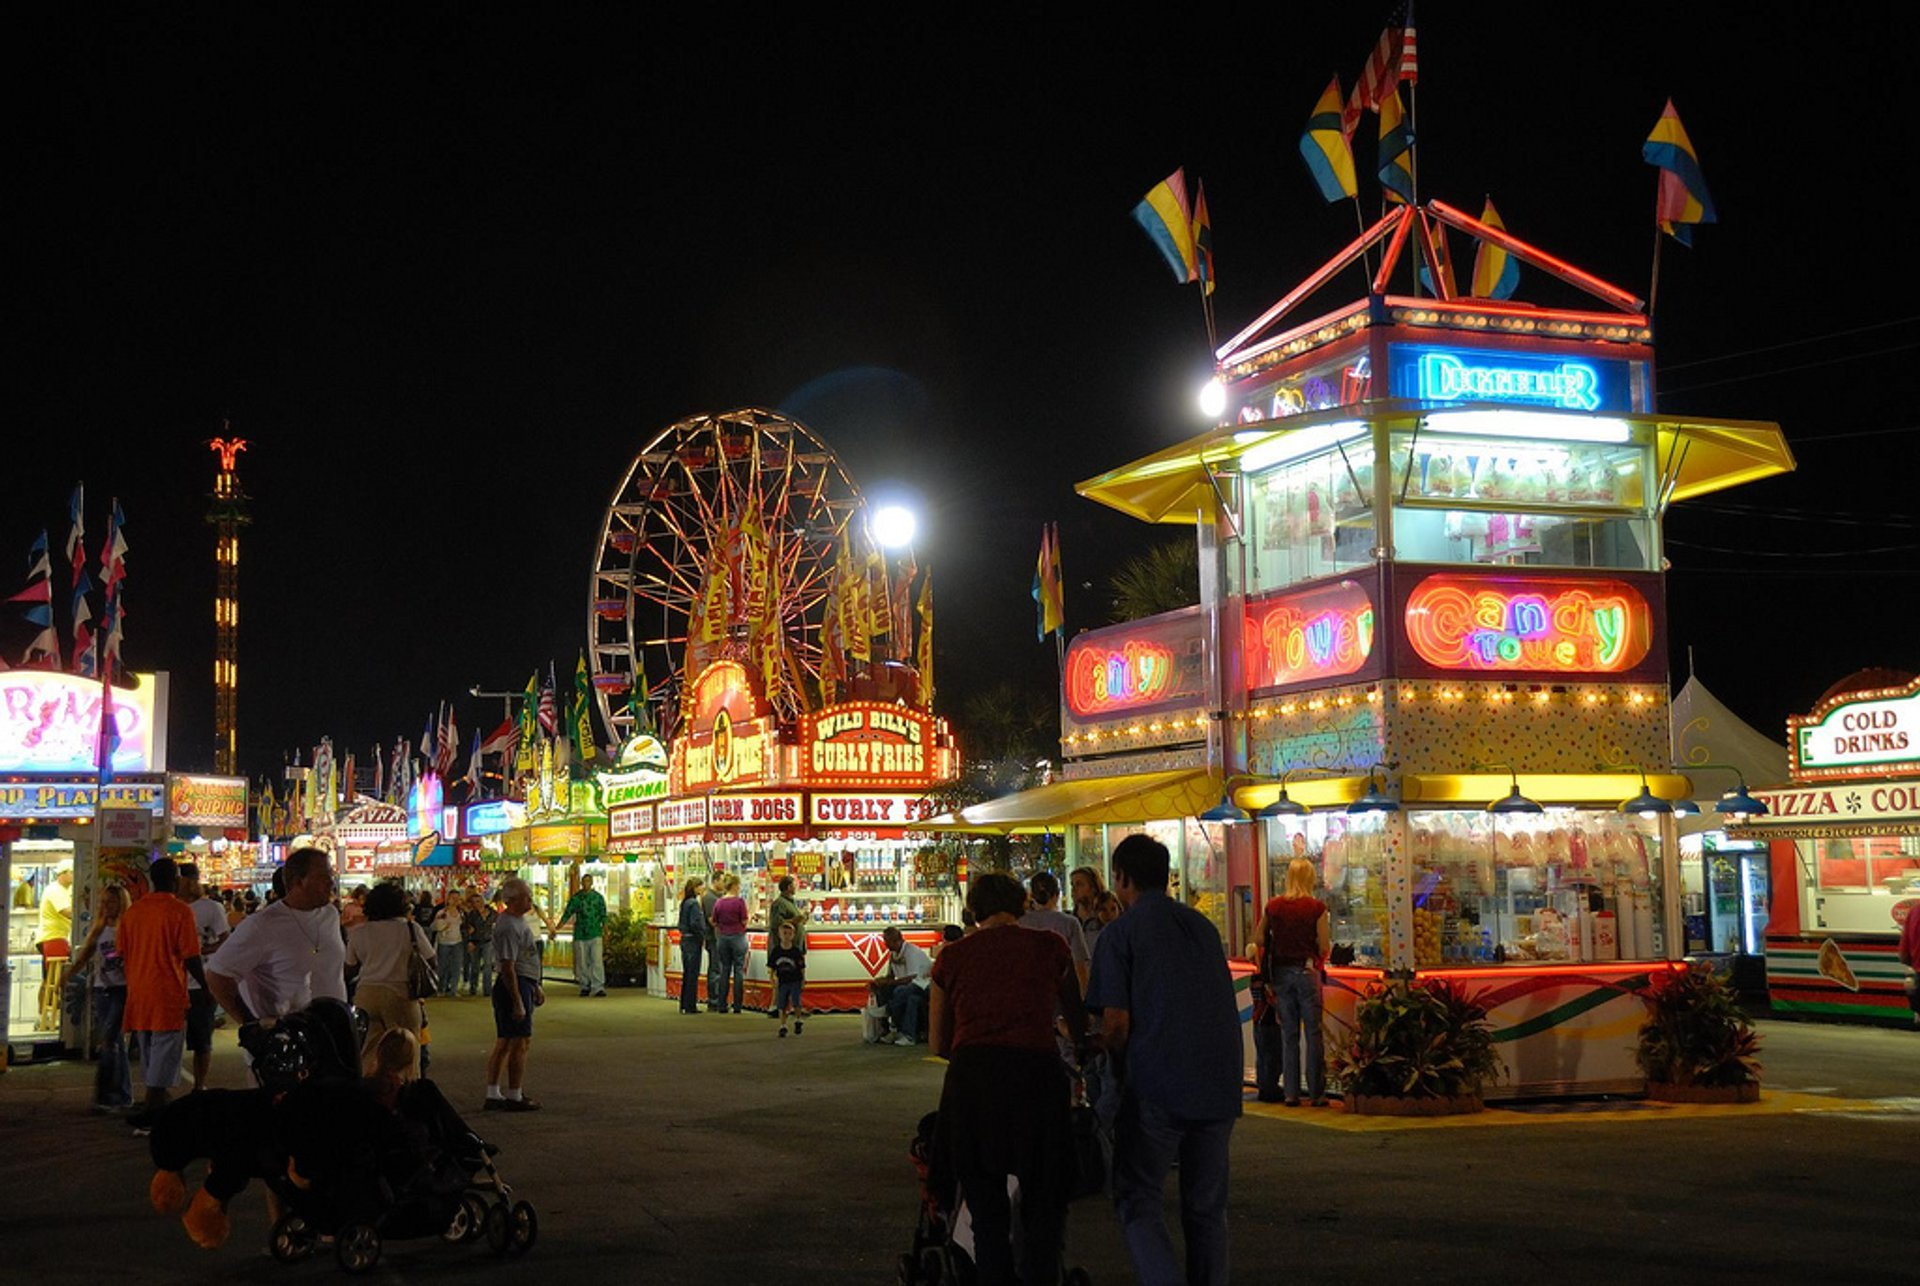 South Florida Fair in Florida - Best Season 2019